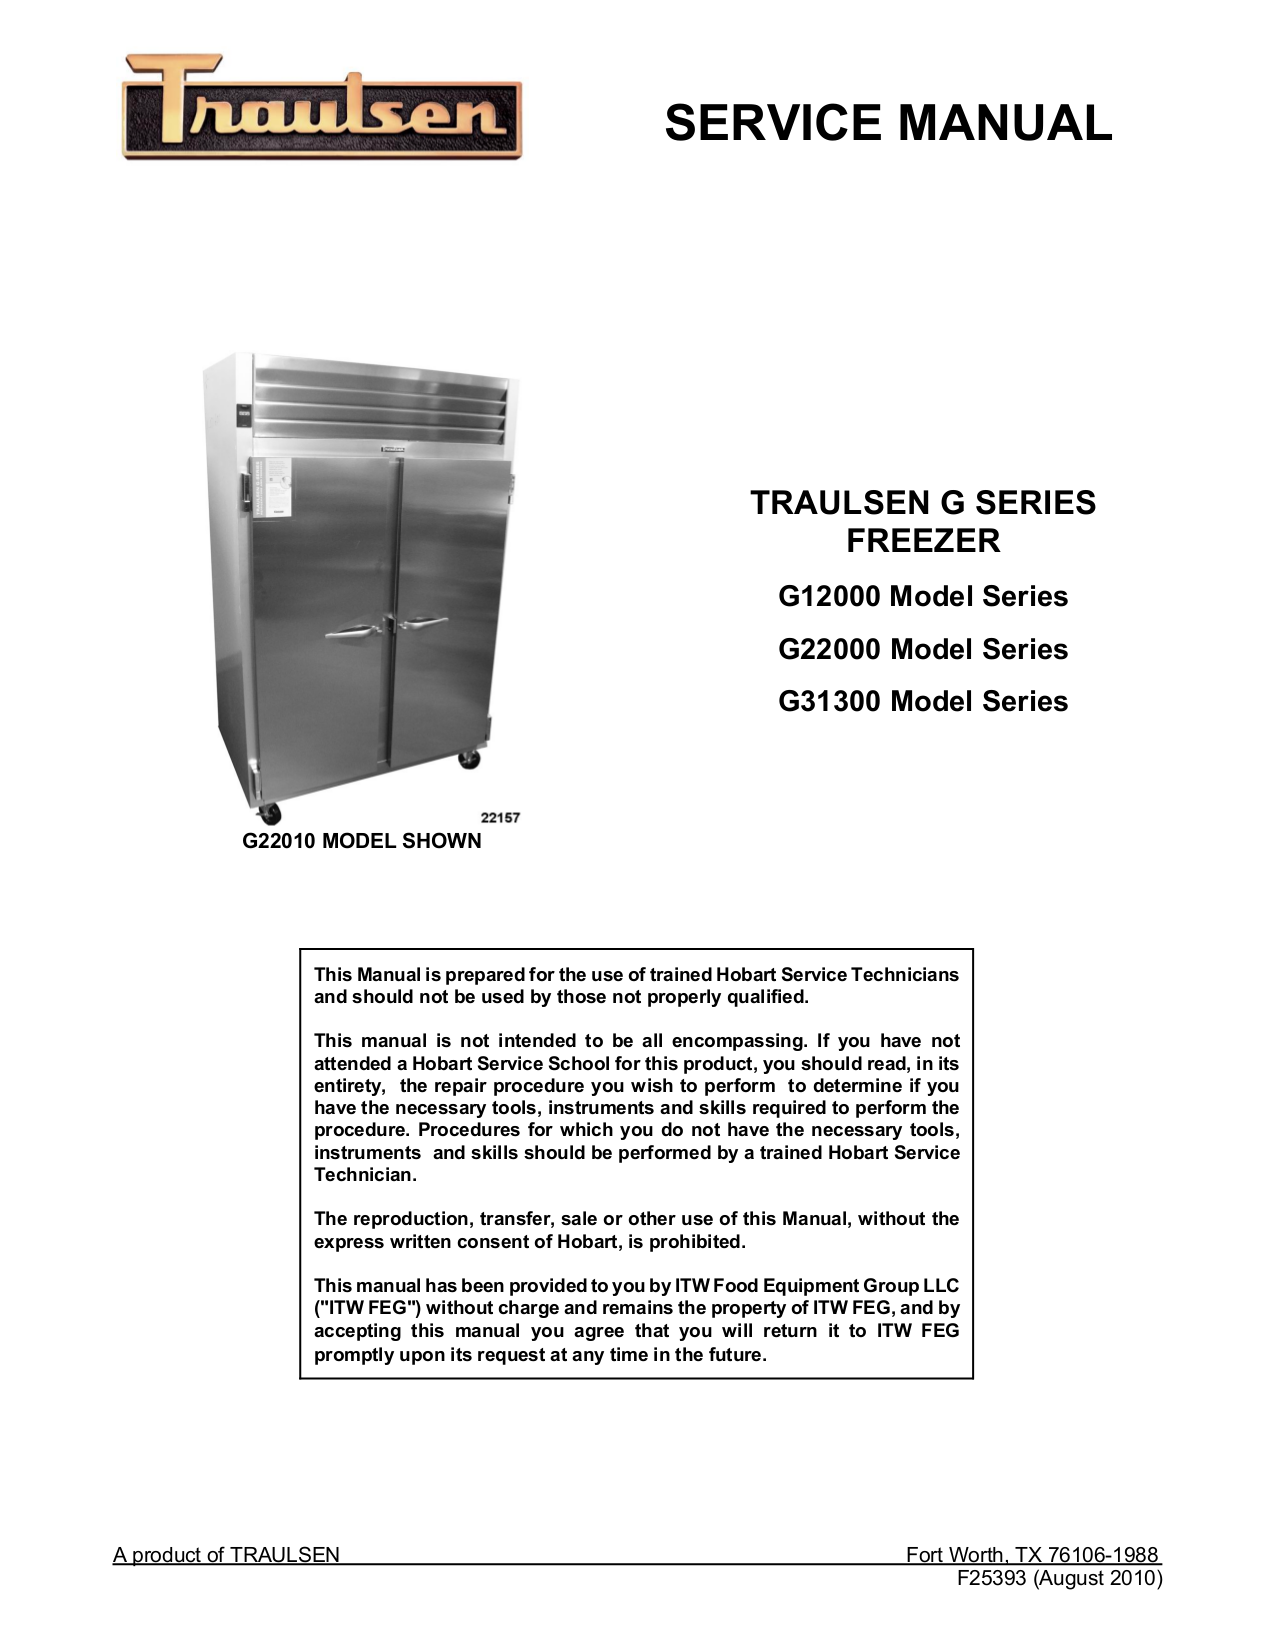 Traulsen g12011 wiring diagram wiring diagram virtual fretboard free pdf for traulsen g22000 freezer manual asfbconference2016 Image collections